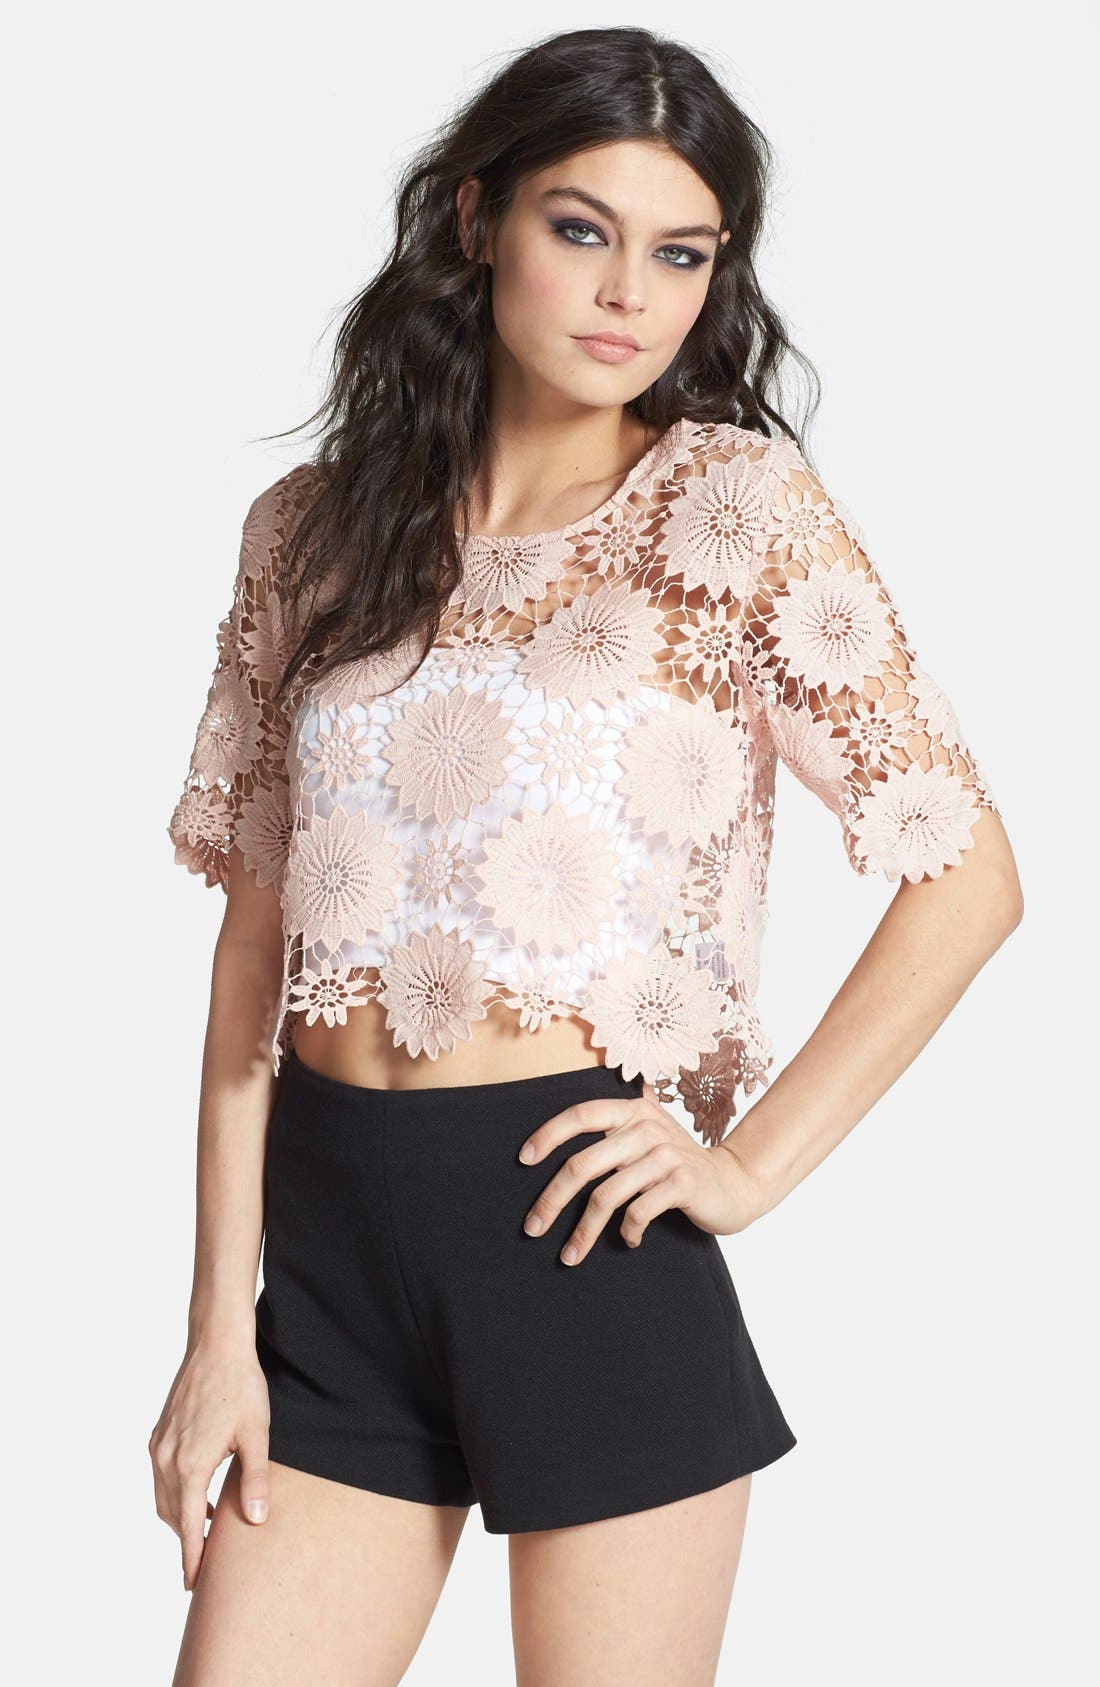 Alternate Image 1 Selected - ASTR Crocheted Floral Crop Top